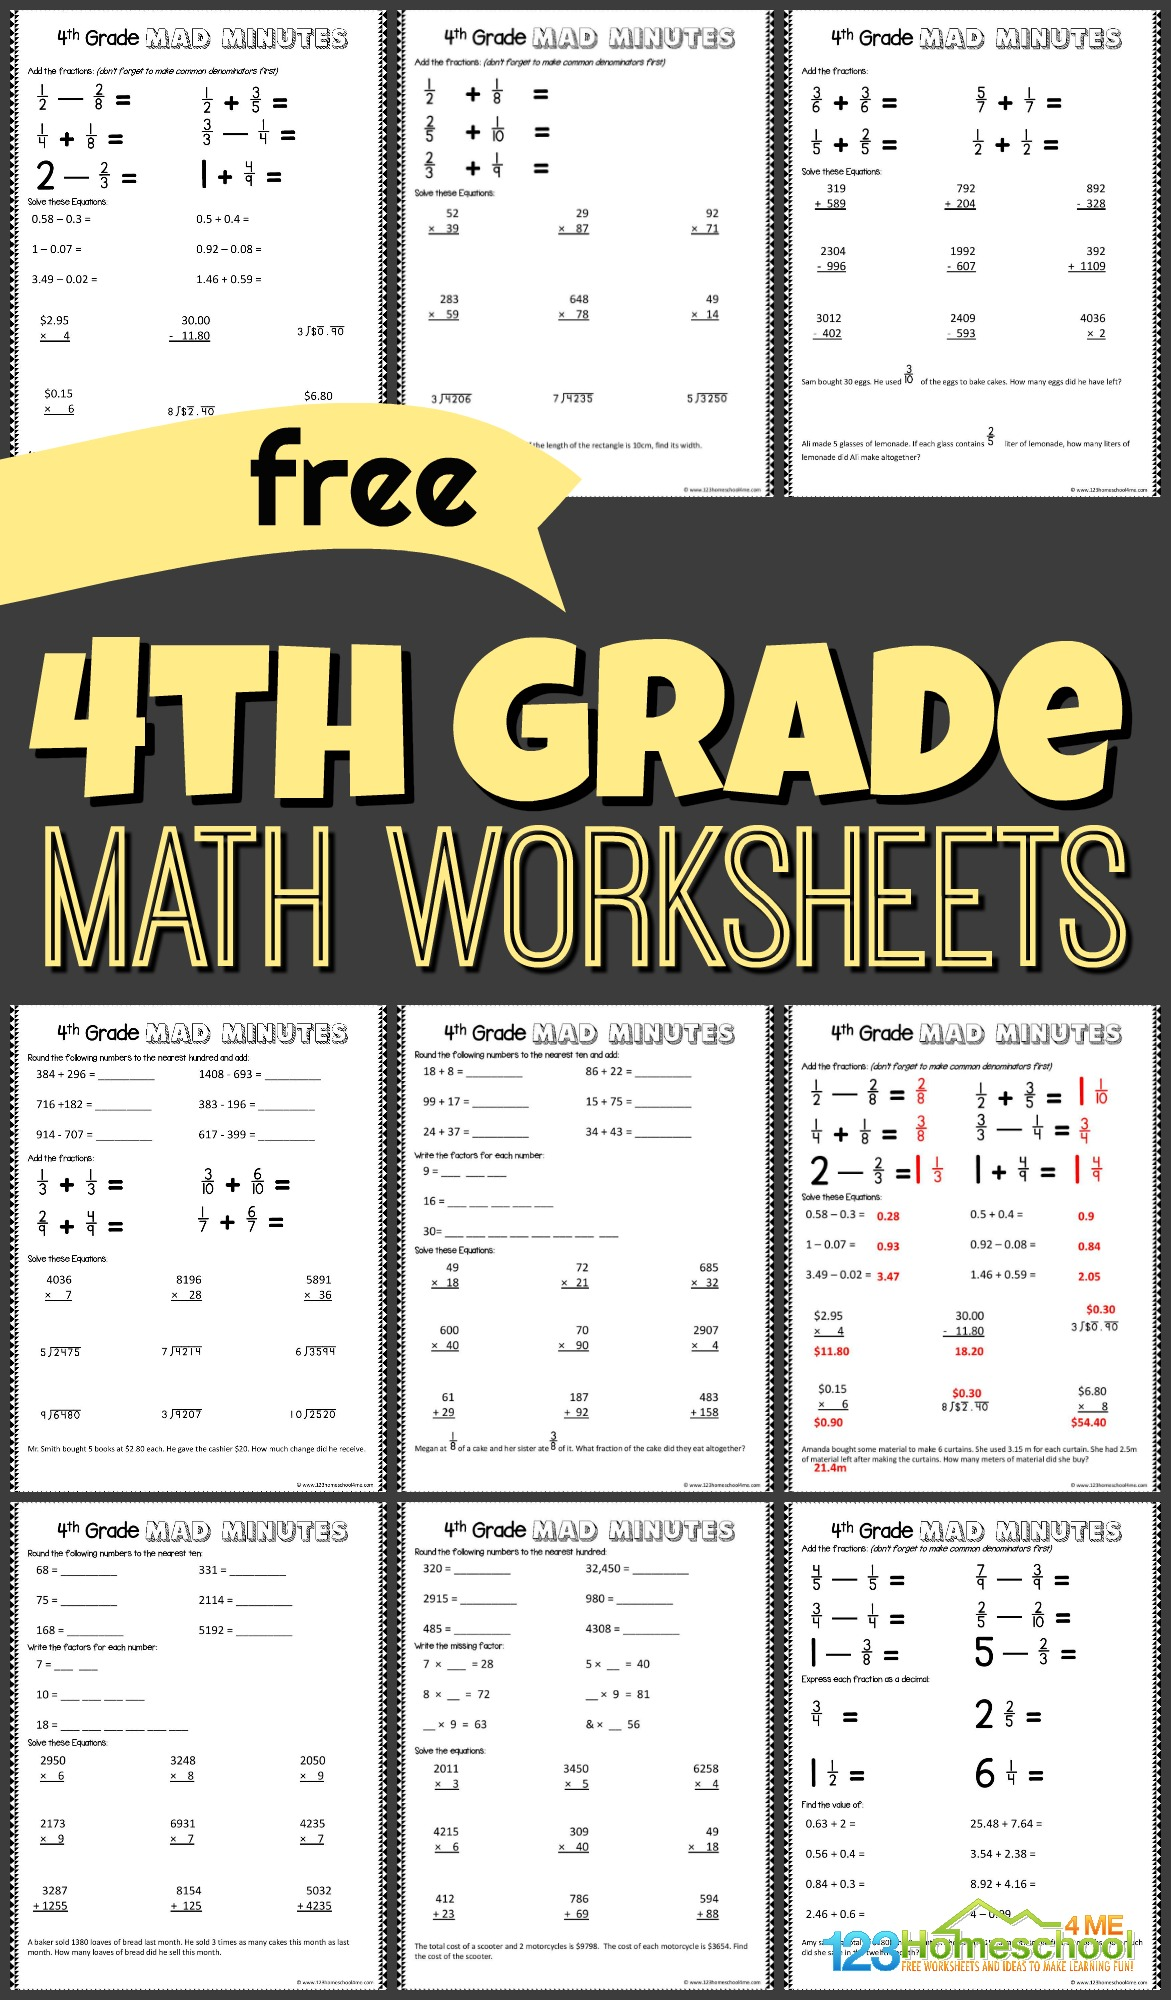 Free 4th Grade Math Worksheets